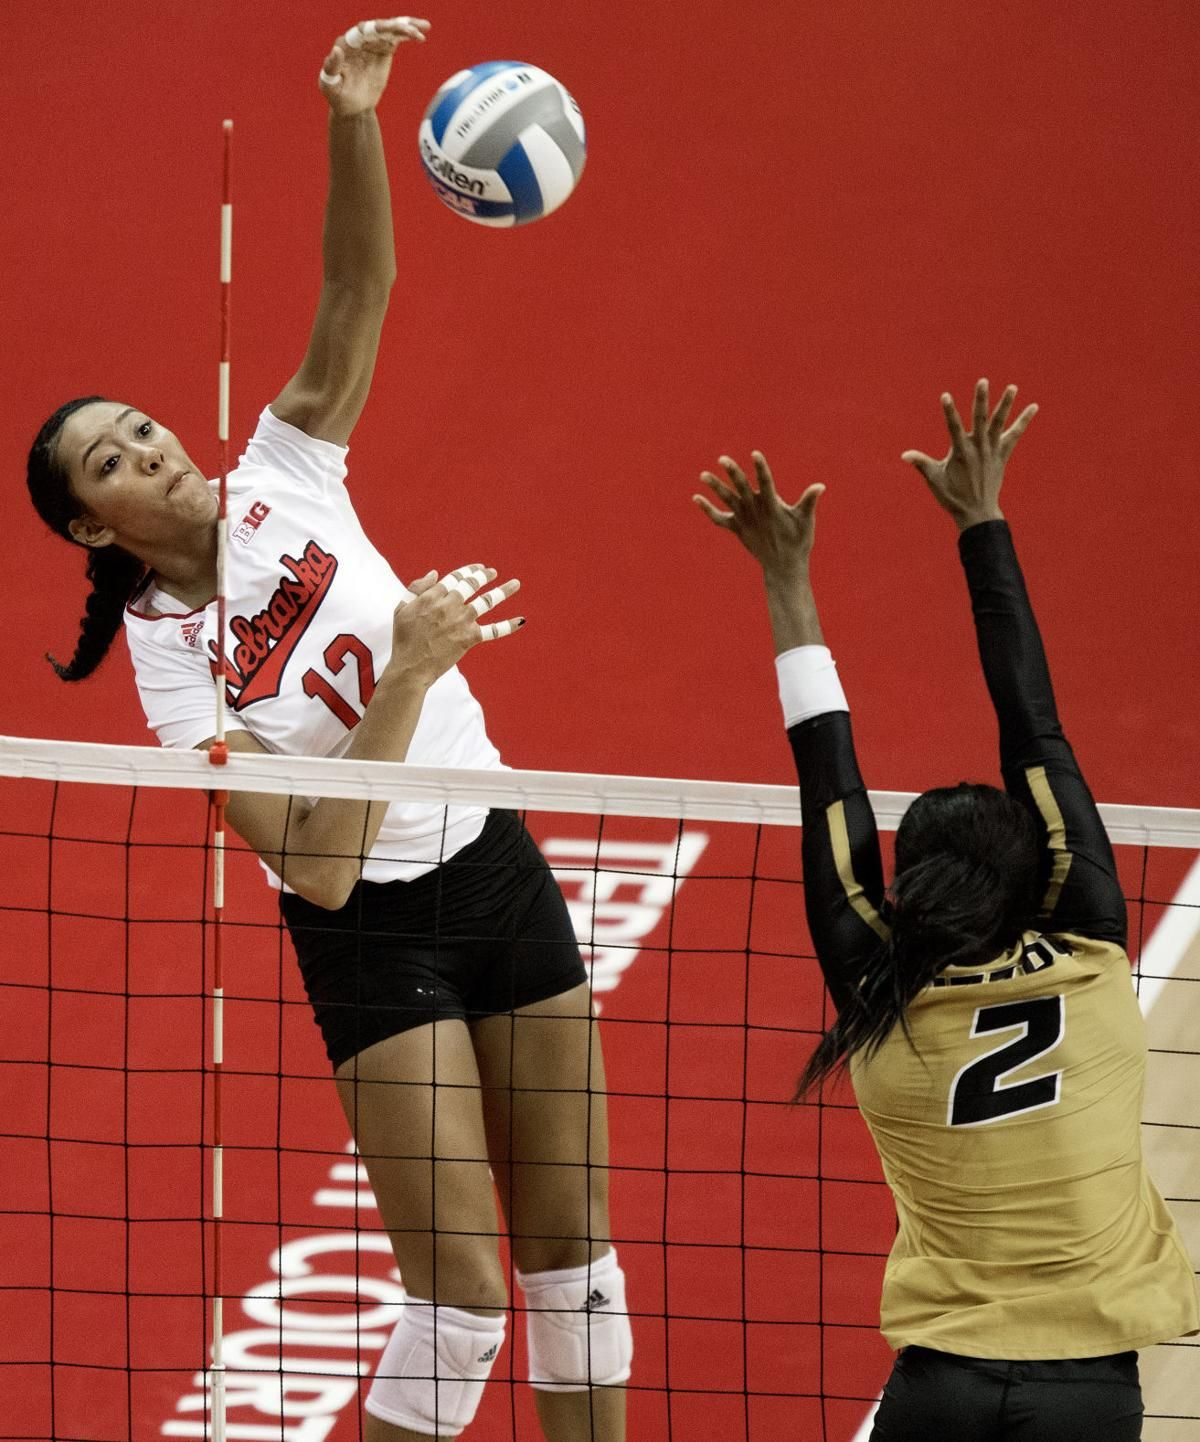 Lincoln Regional Notes Tweak Helps Sweet Break Out Of Slump Devaney Crowd Impresses Coaches Volleyball Pictures Coaching Volleyball Basketball Girls